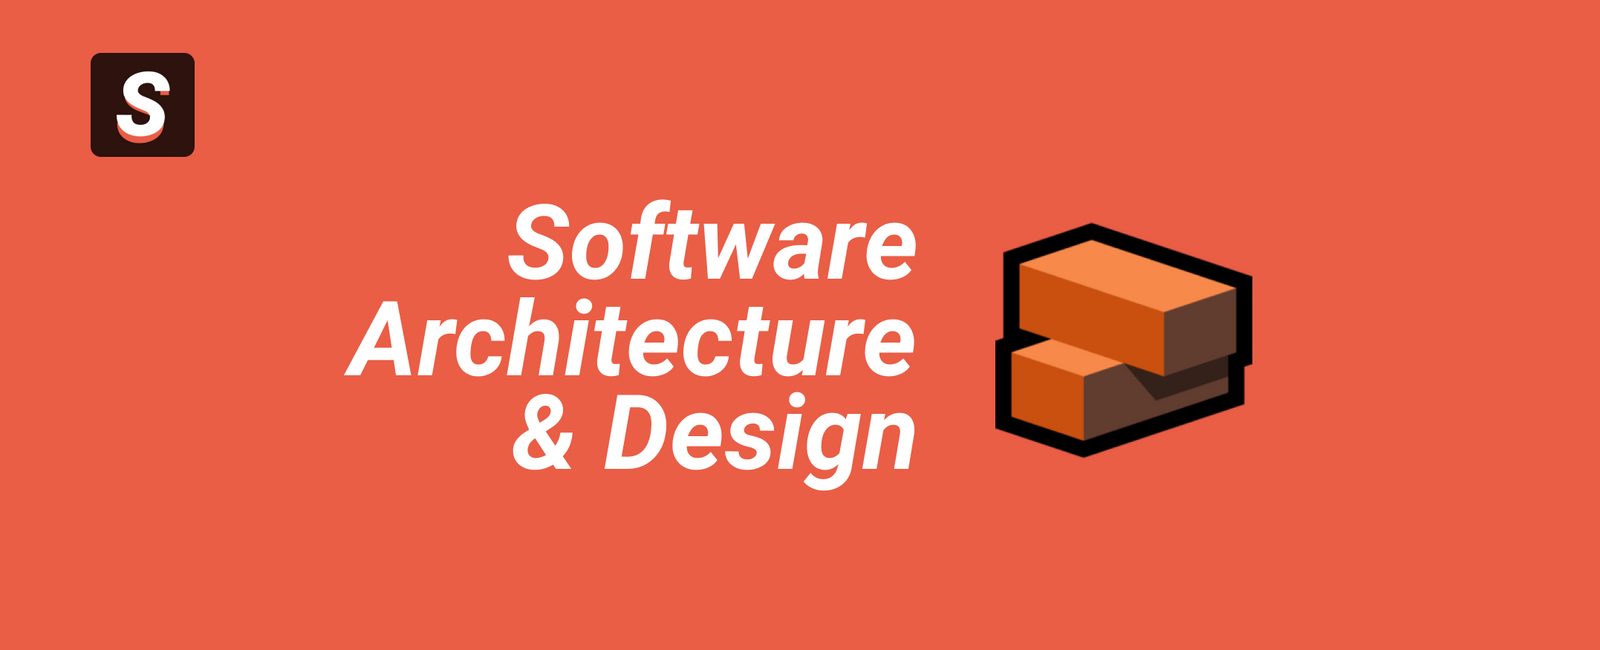 Difference between software architecture and software design